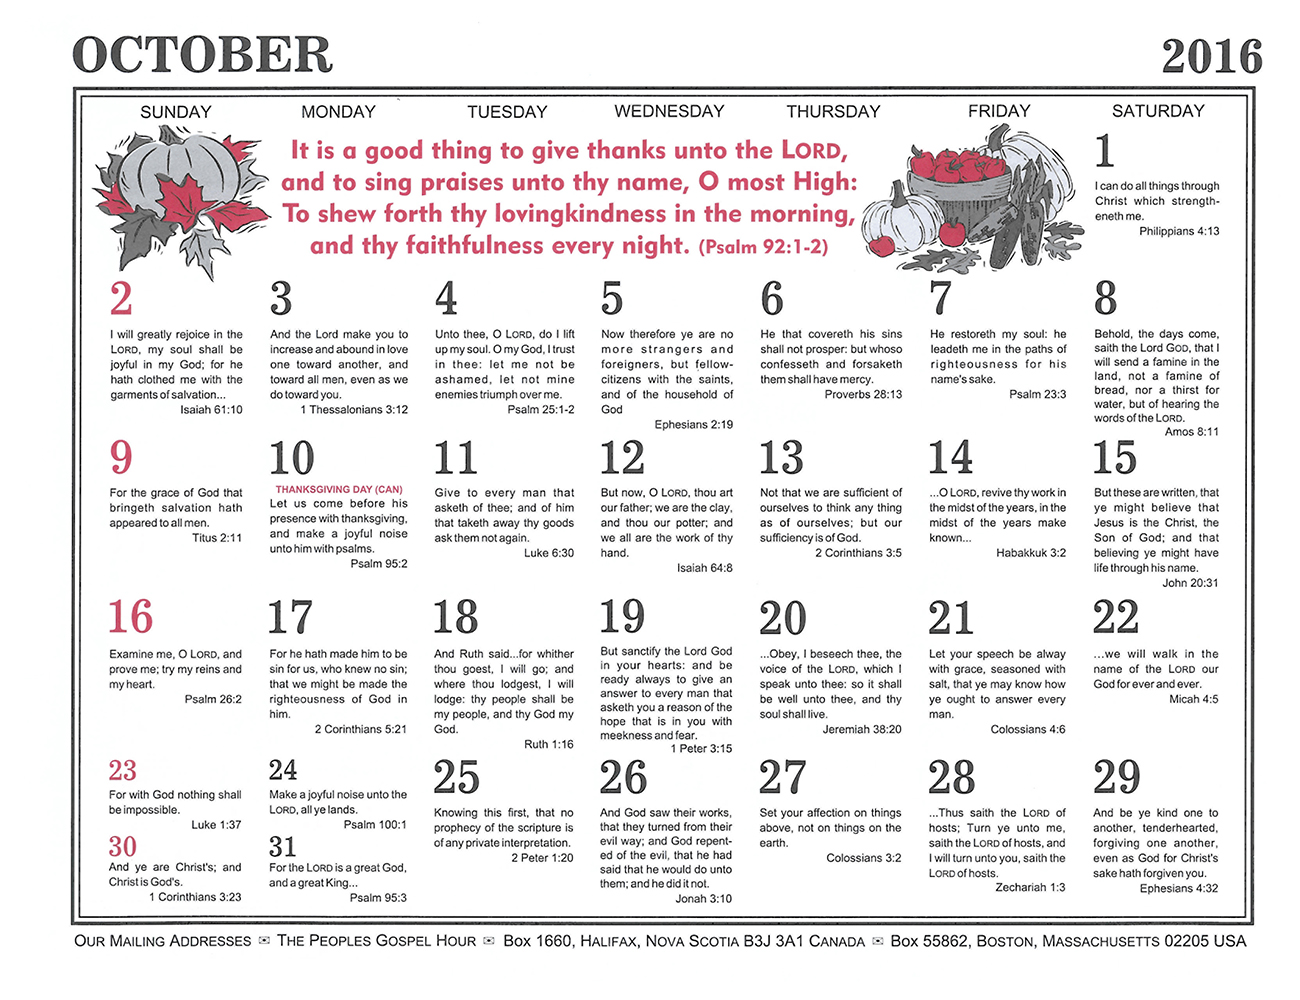 October: 2016 The Peoples Gospel Hour Calendar